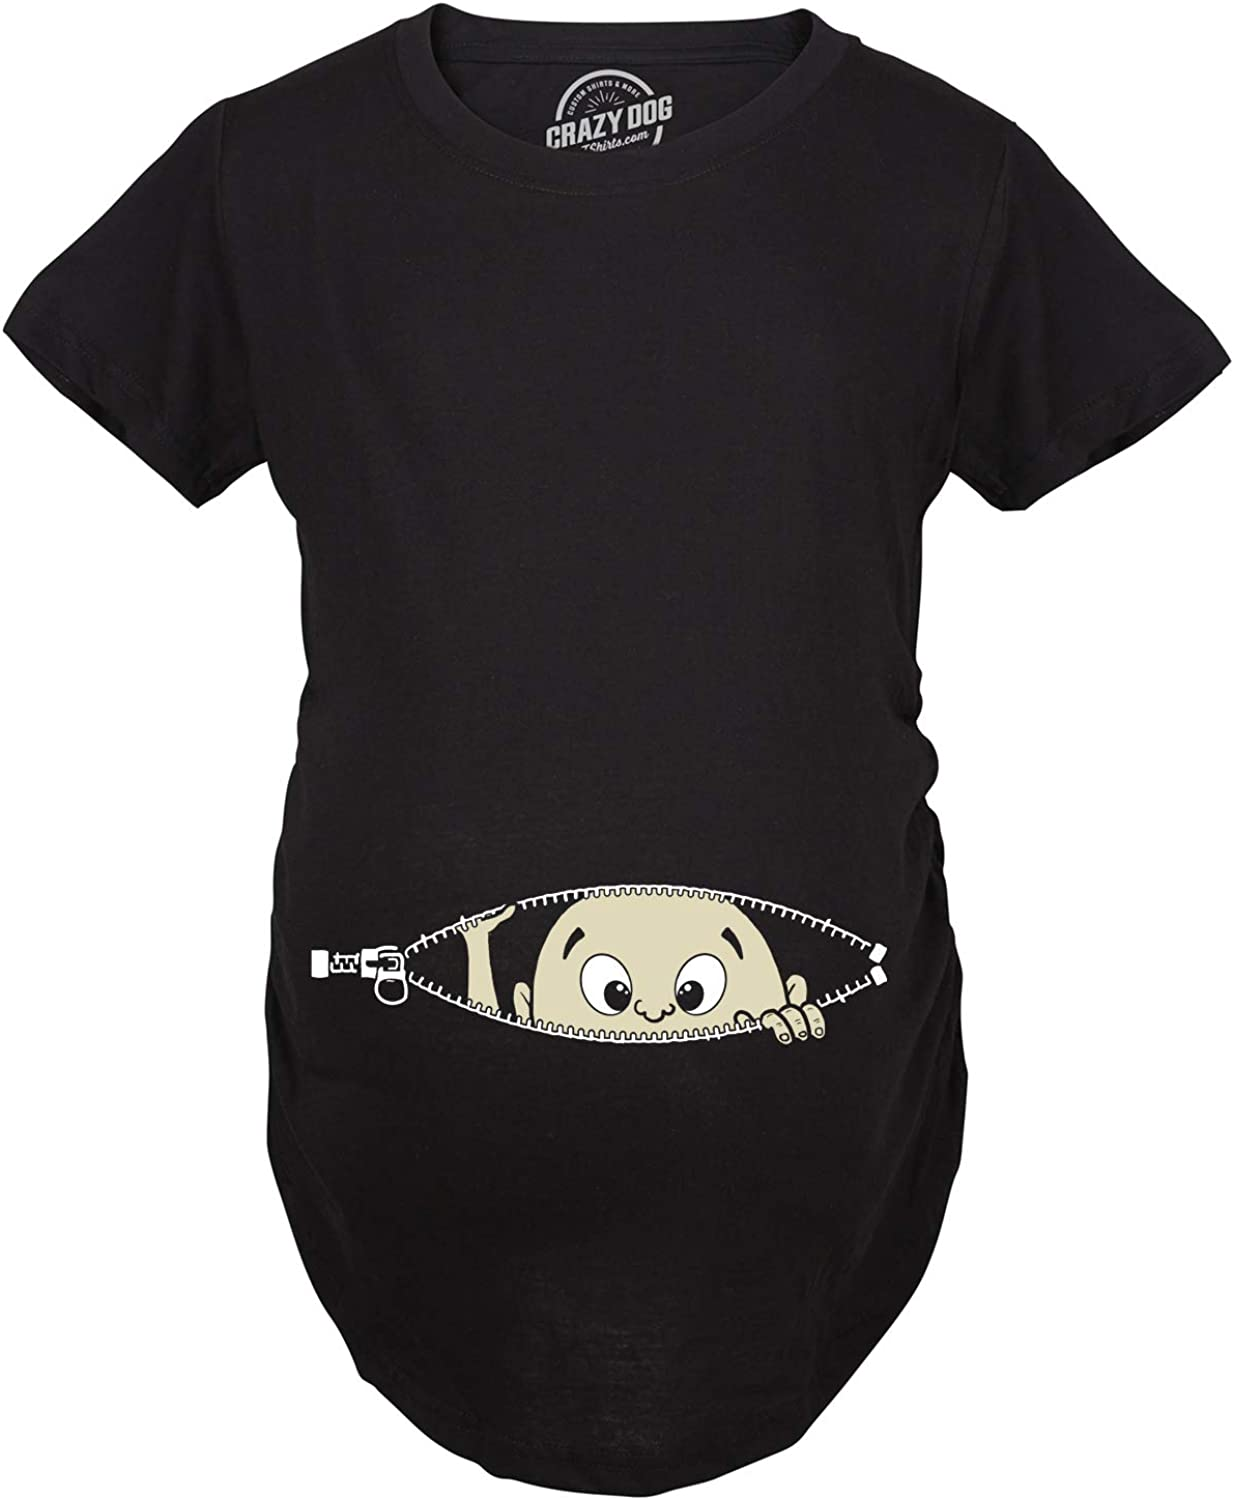 Crazy Dog Tshirts Maternity Baby Peeking T Shirt Funny Pregnancy Tee for Expecting Mothers Damen